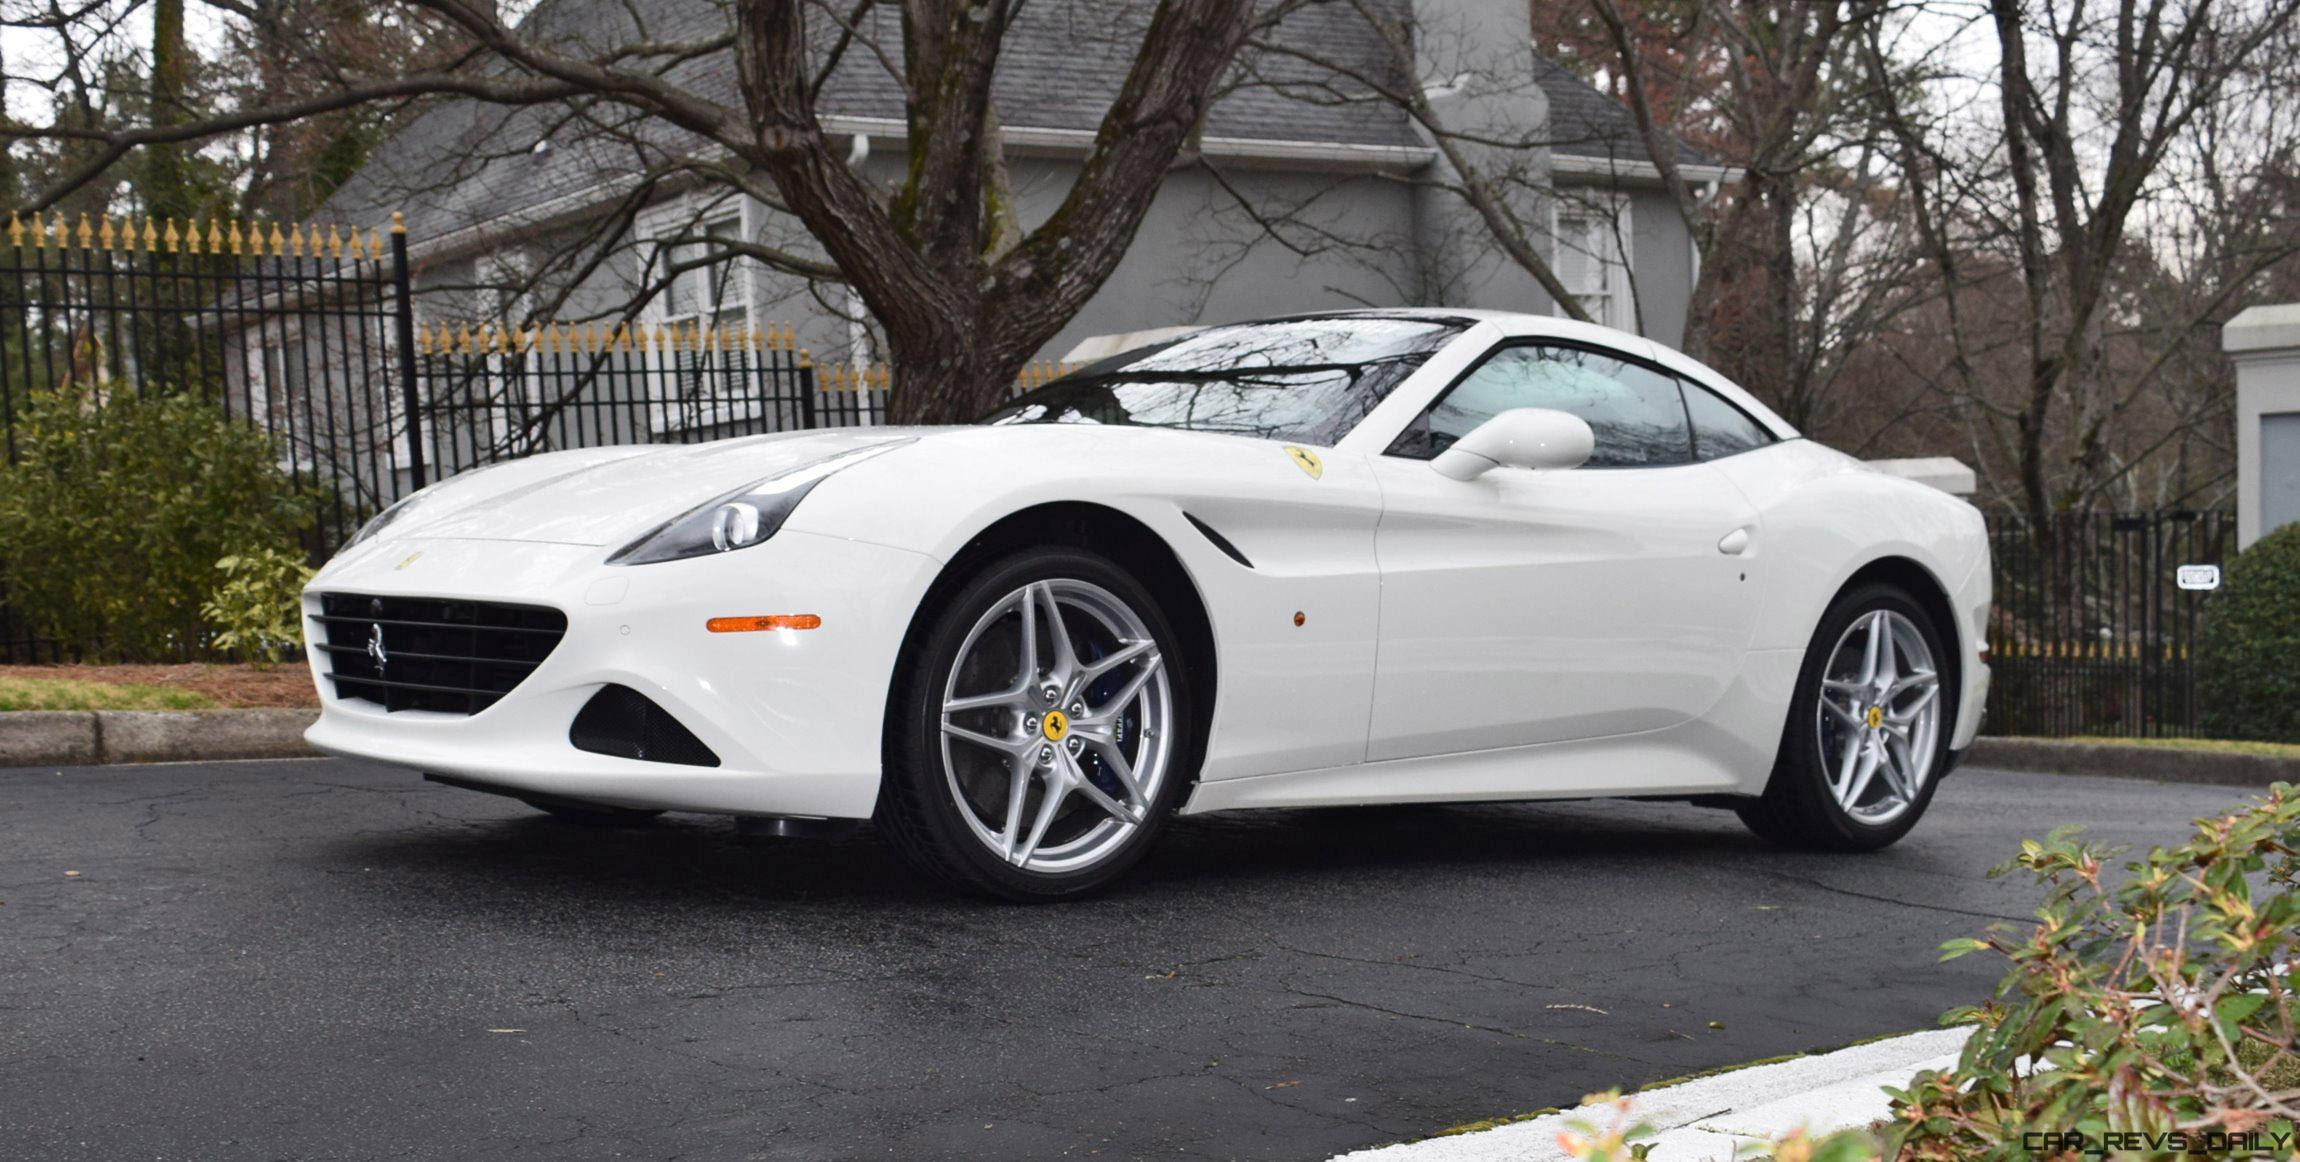 2016 Ferrari California T - White over Blue 35